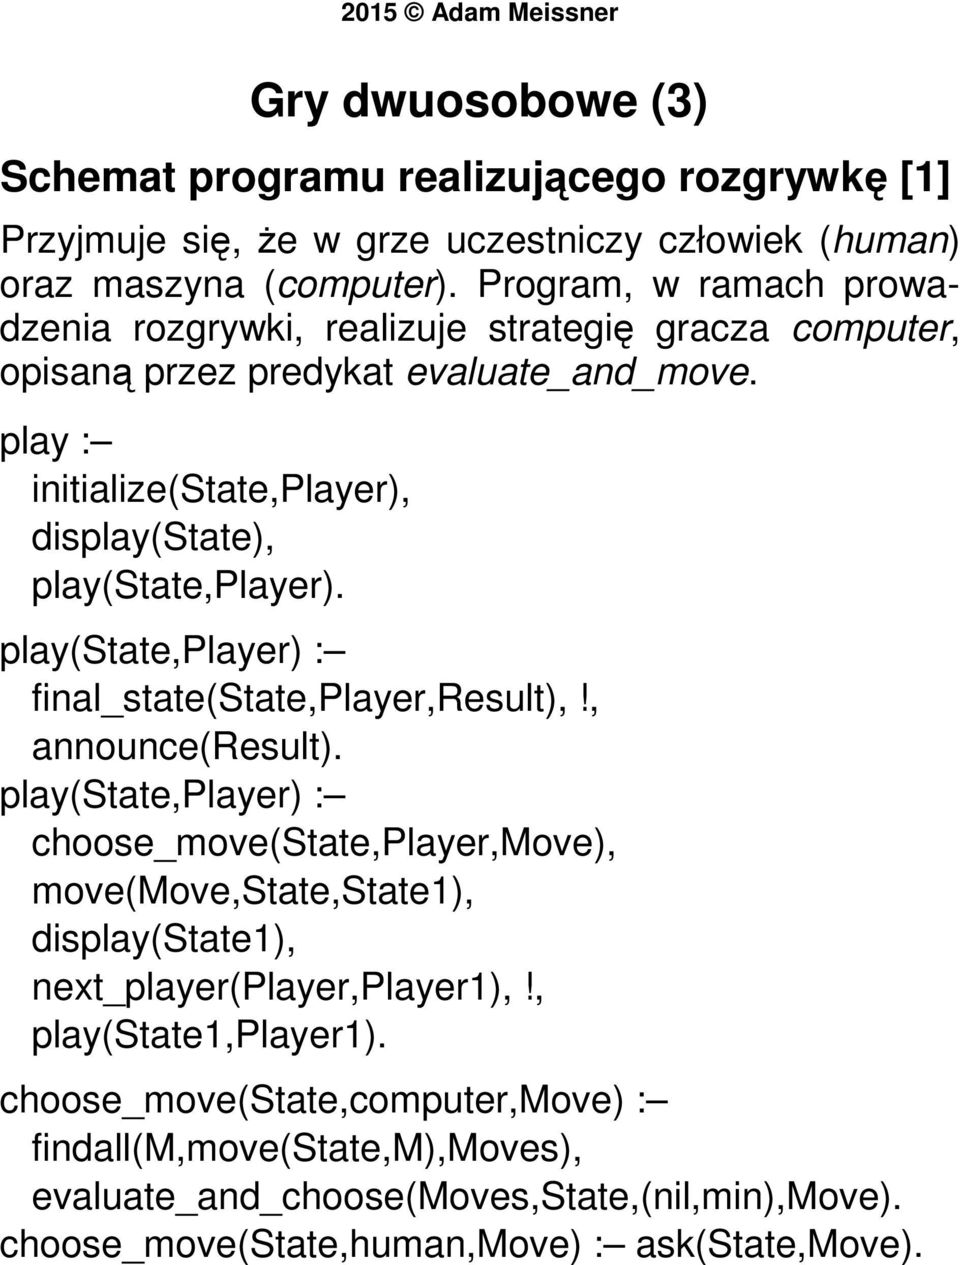 play : initialize(state,player), display(state), play(state,player). play(state,player) : final_state(state,player,result),!, announce(result).